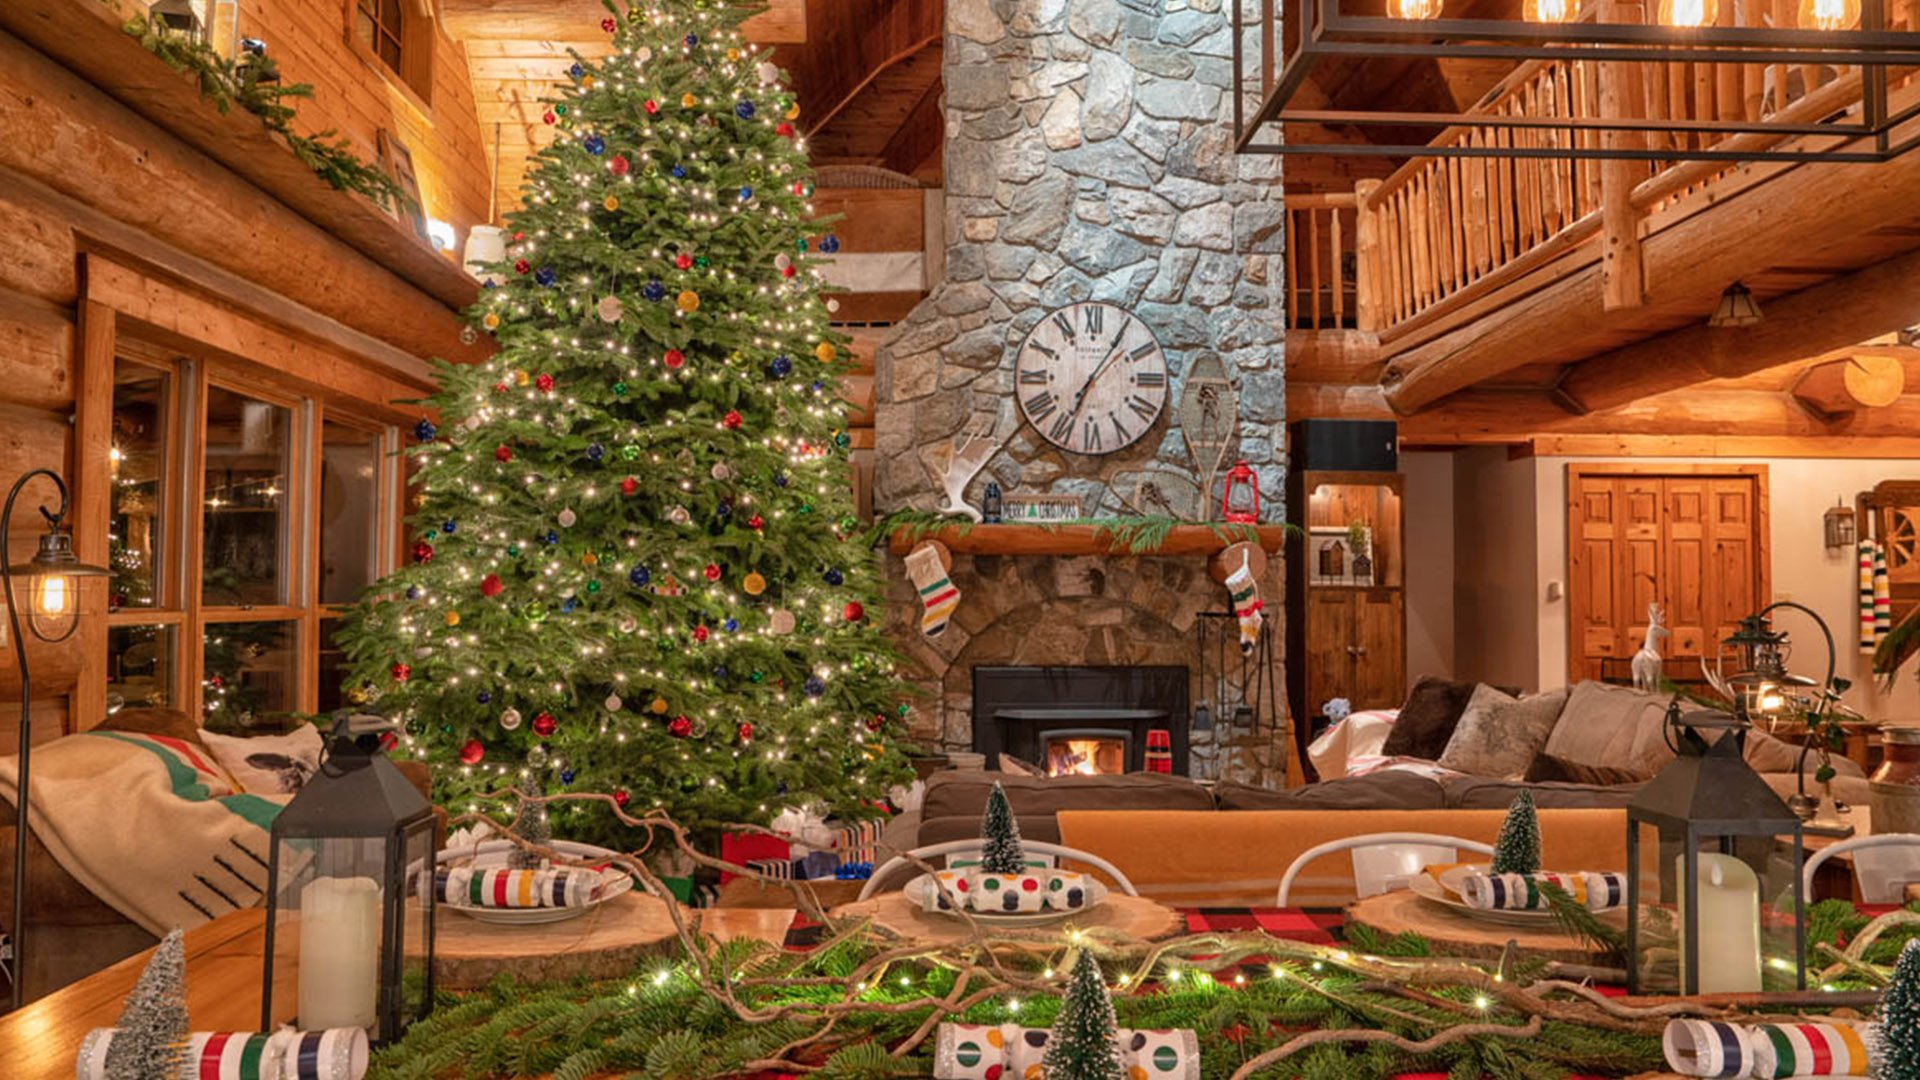 http://spatulamedia.ca/wp-content/uploads/2019/05/homes-for-the-holidays-caldwell-farm.jpg